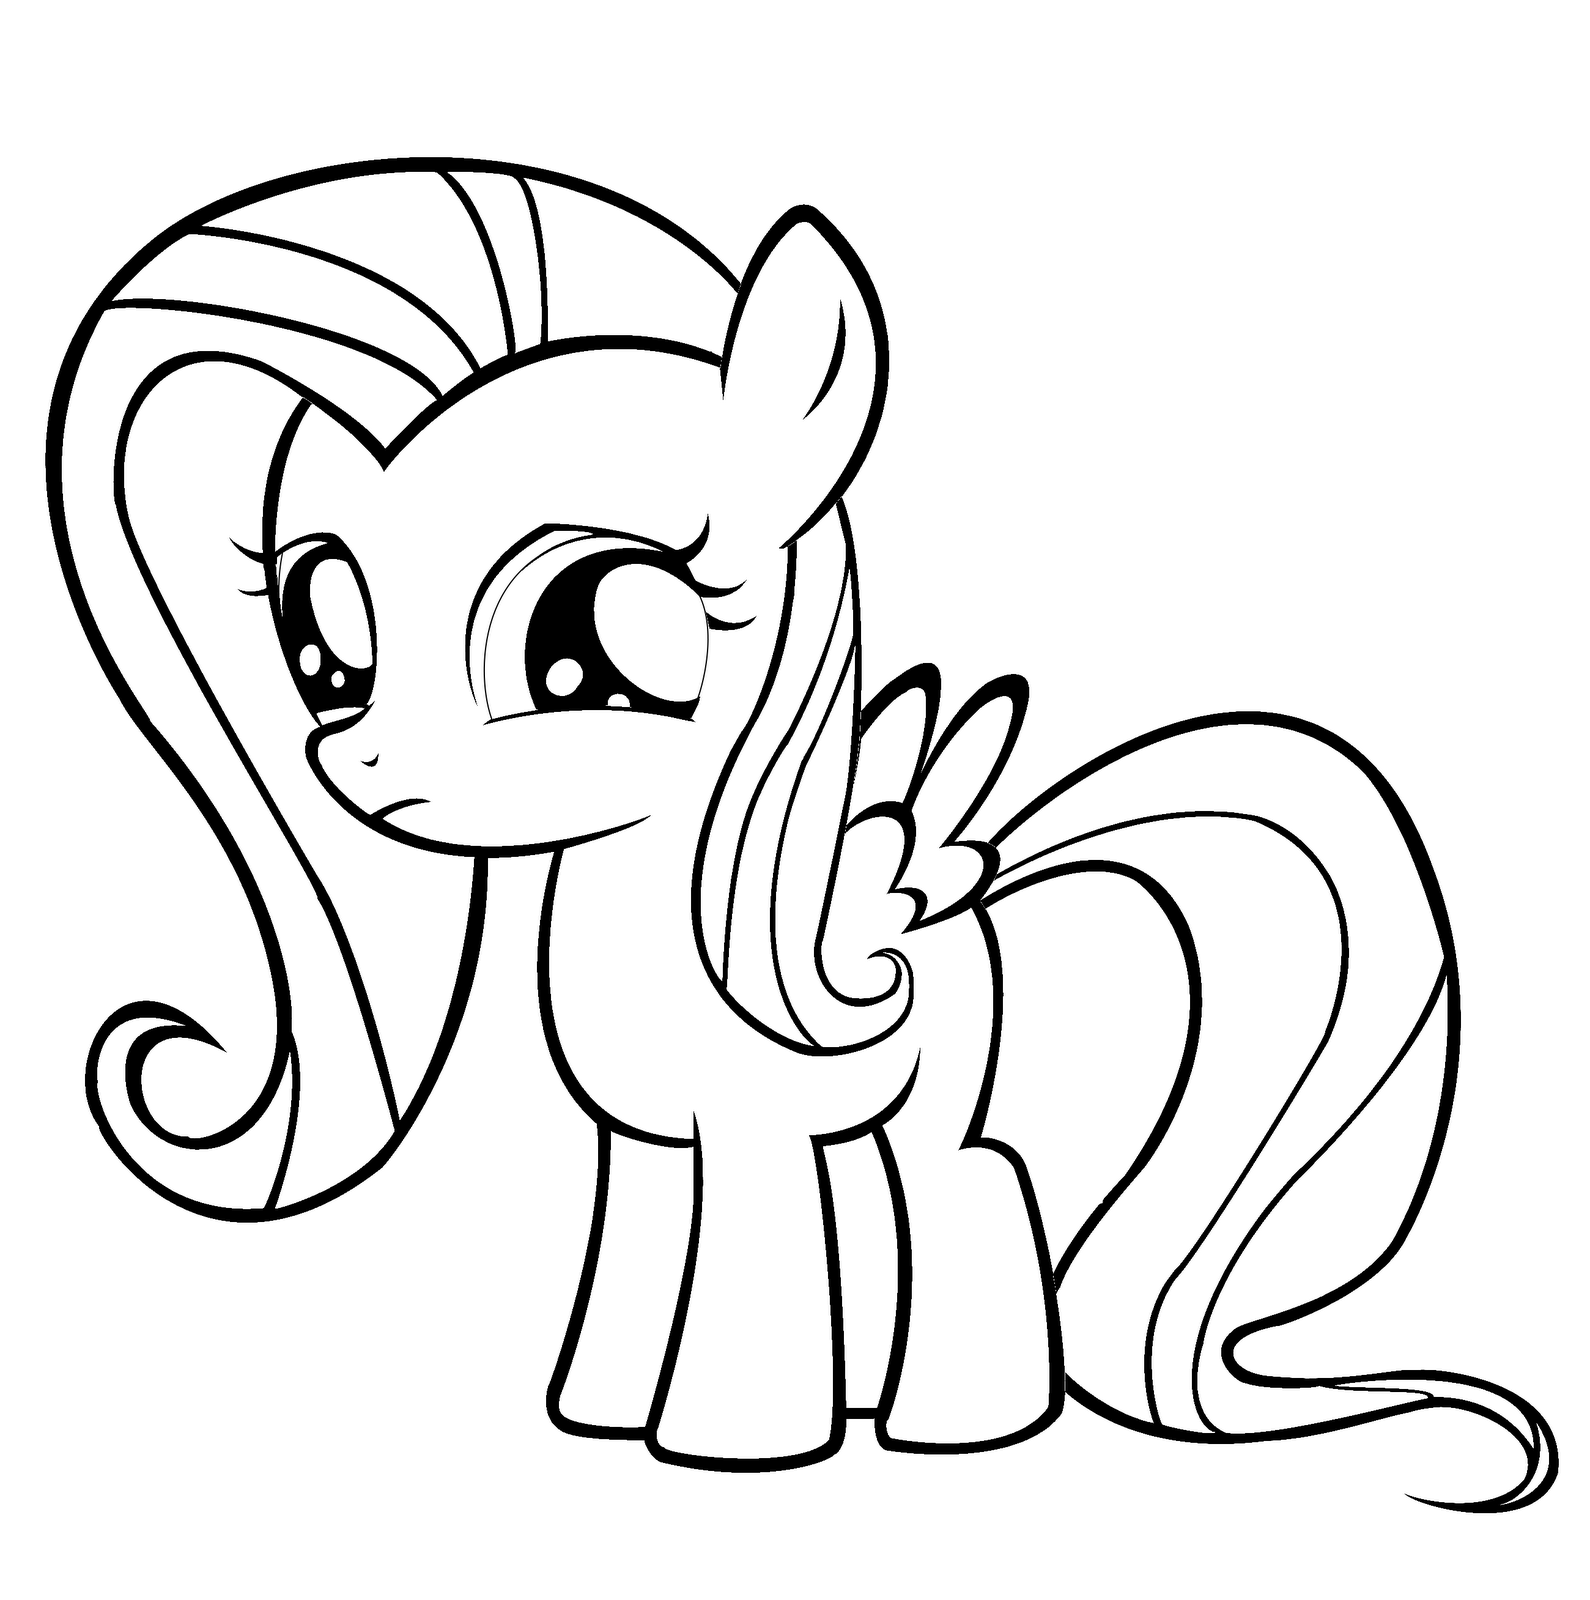 Coloring Pages My Little Pony Babies : Baby fluttershy coloring pages